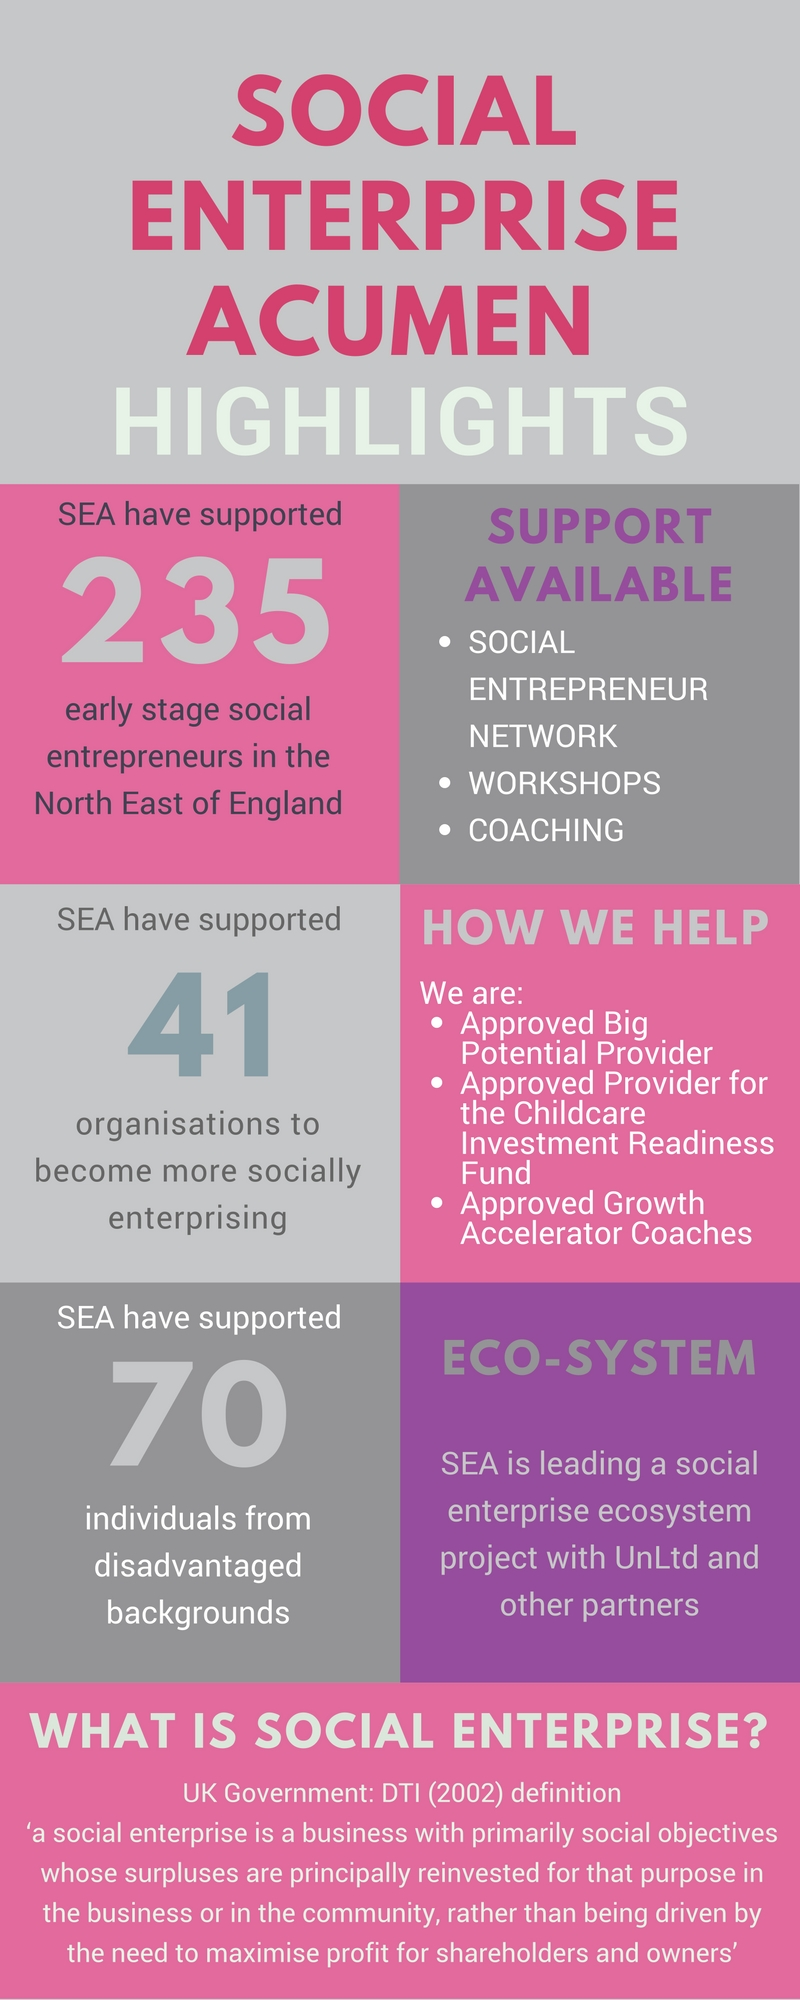 Social Enterprise Acumen highlights